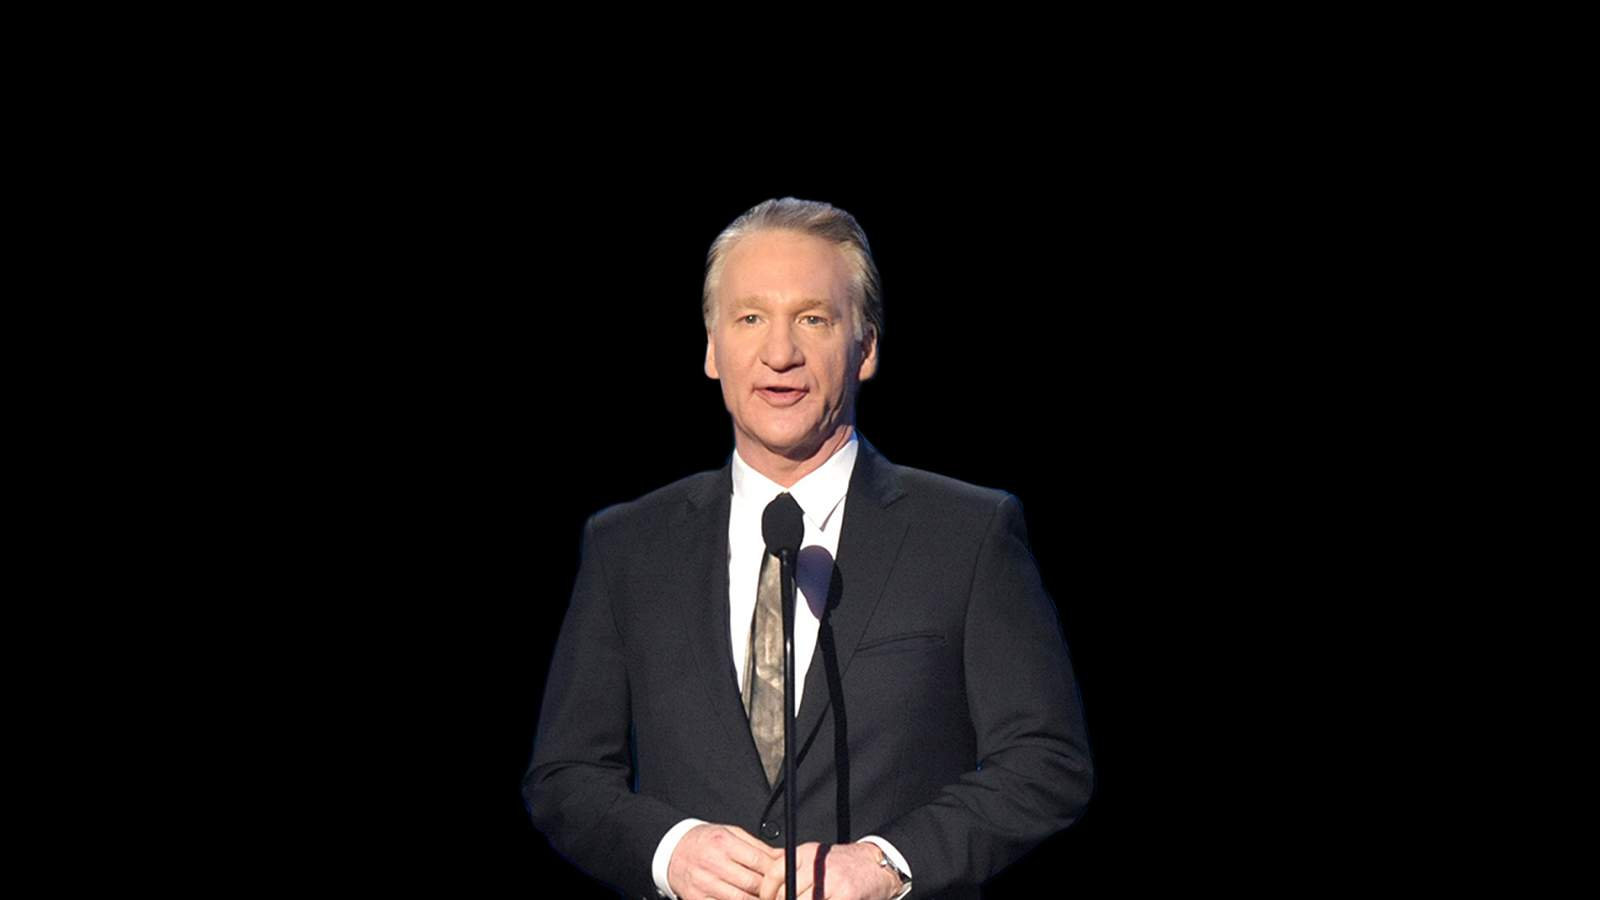 Bill Maher (Rescheduled from 4/11/2020)